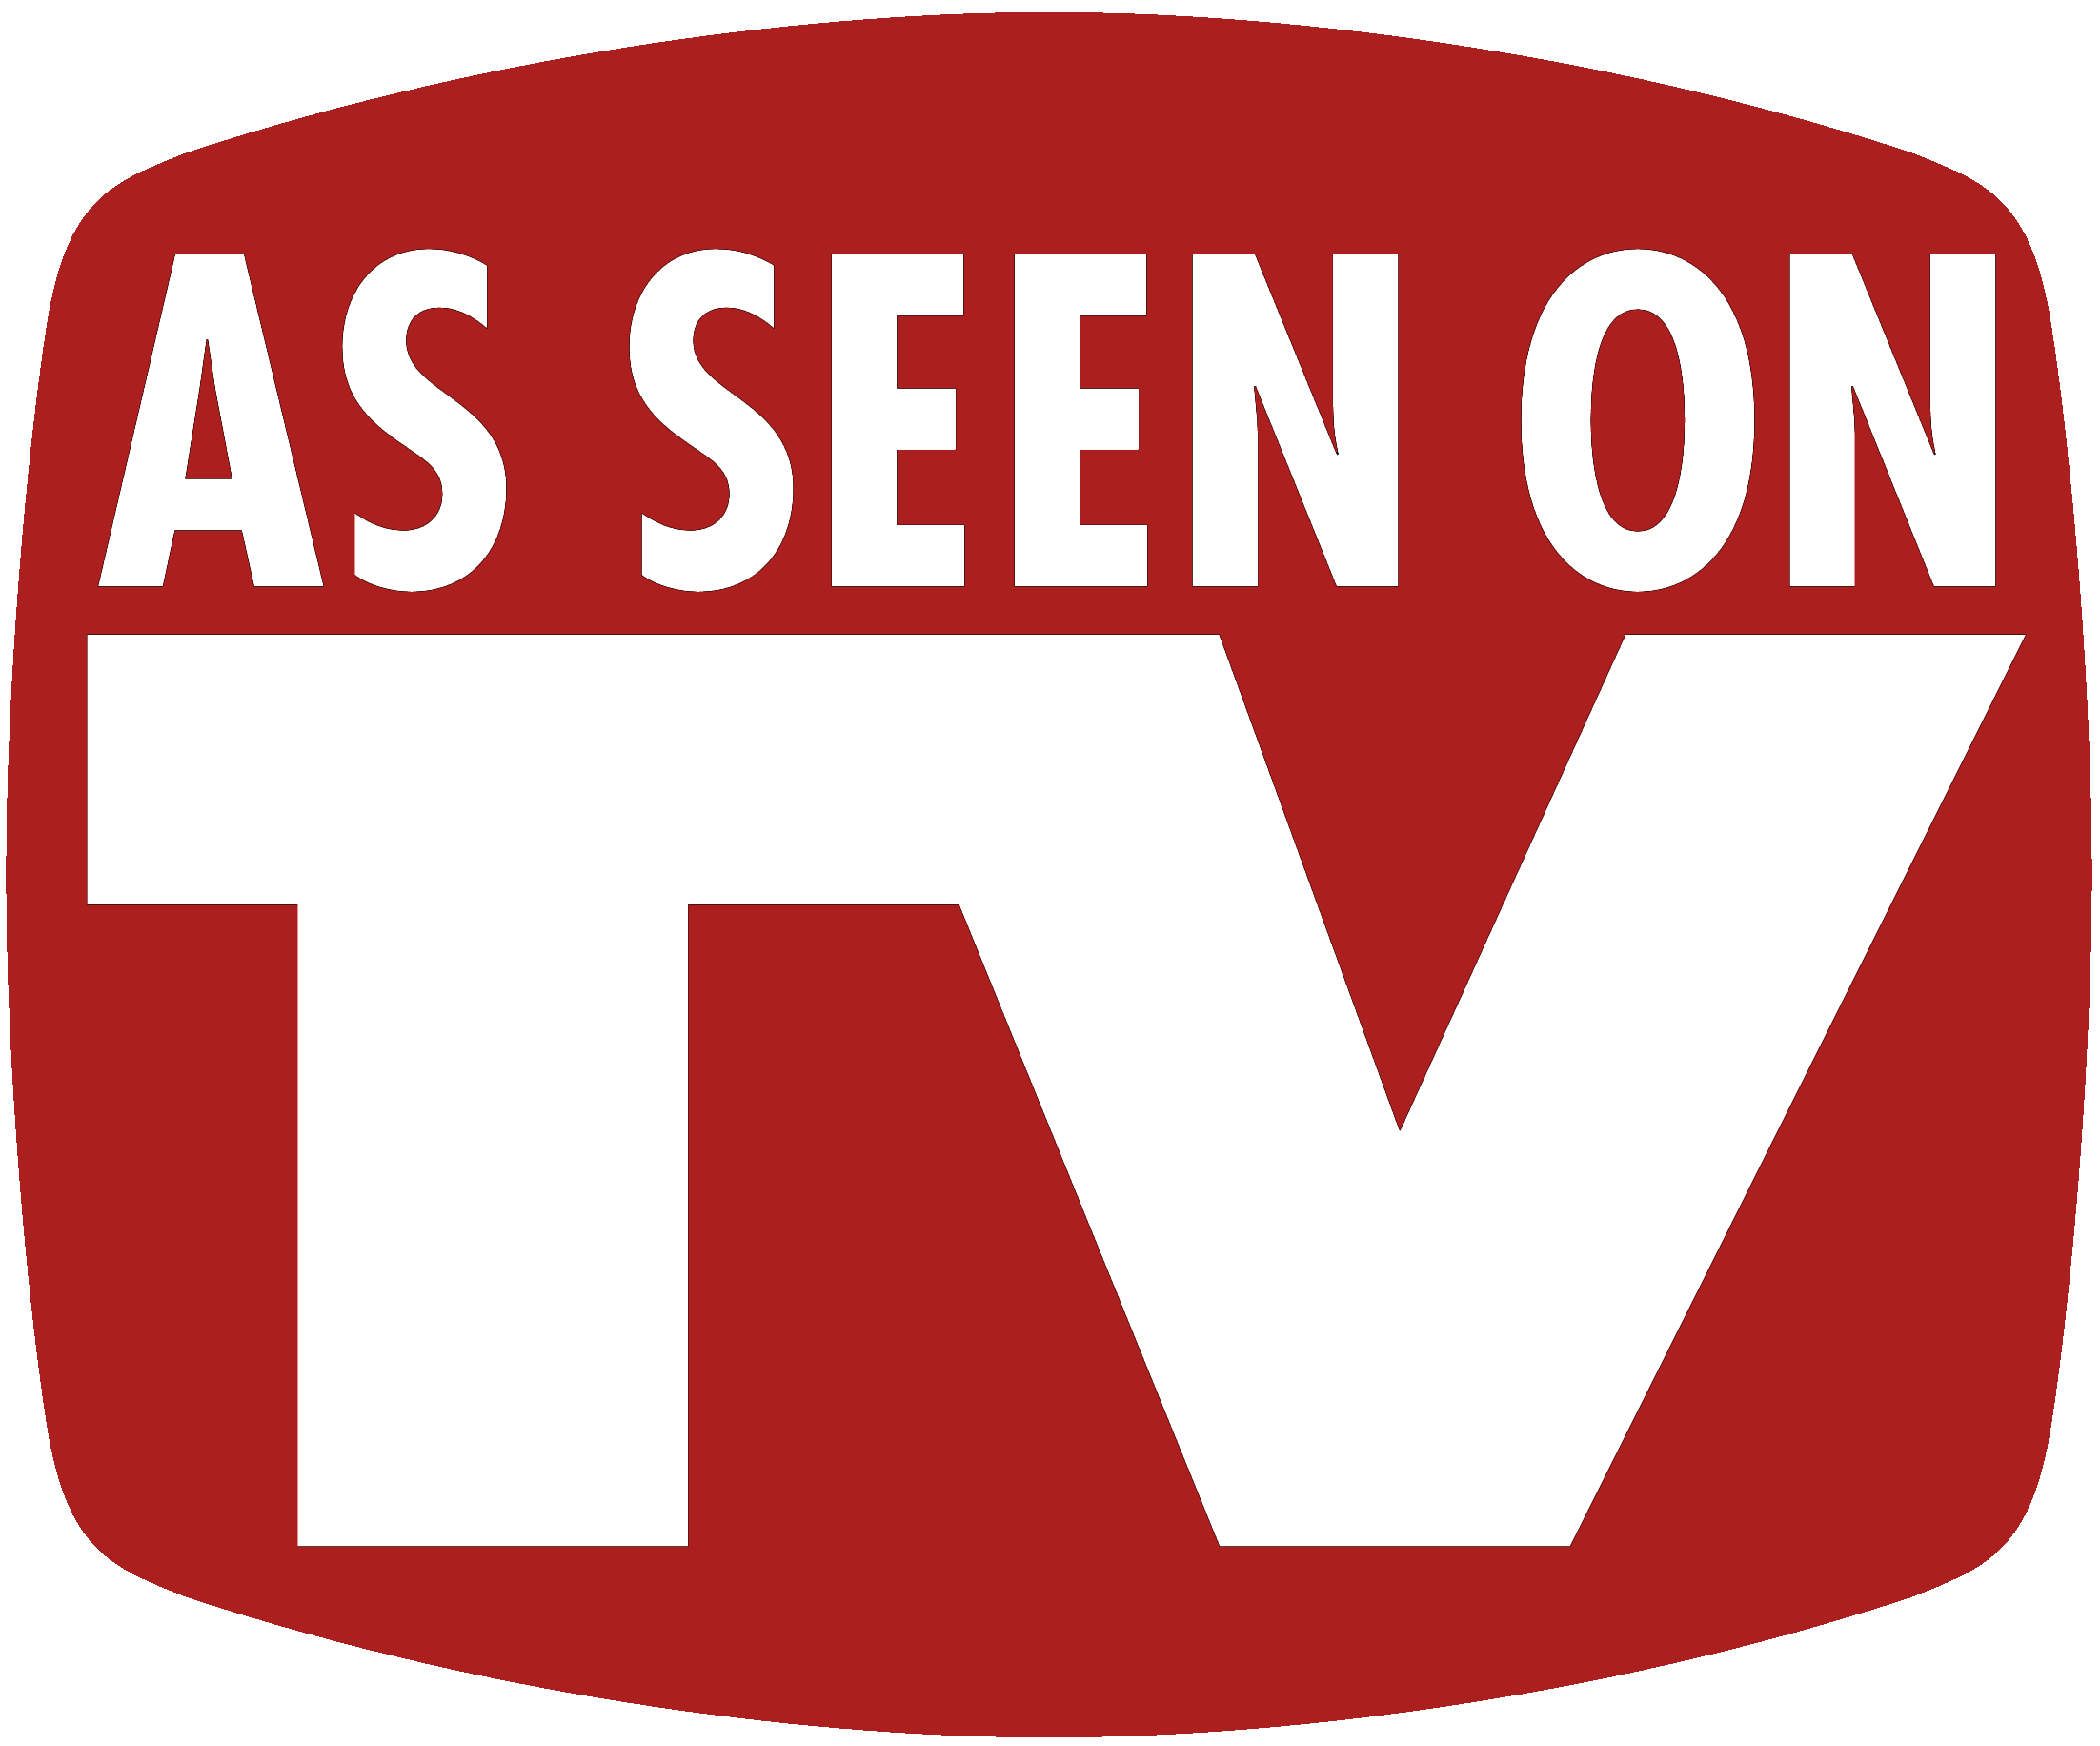 3as-seen-on-tv-logo-png-transparent-copy.png